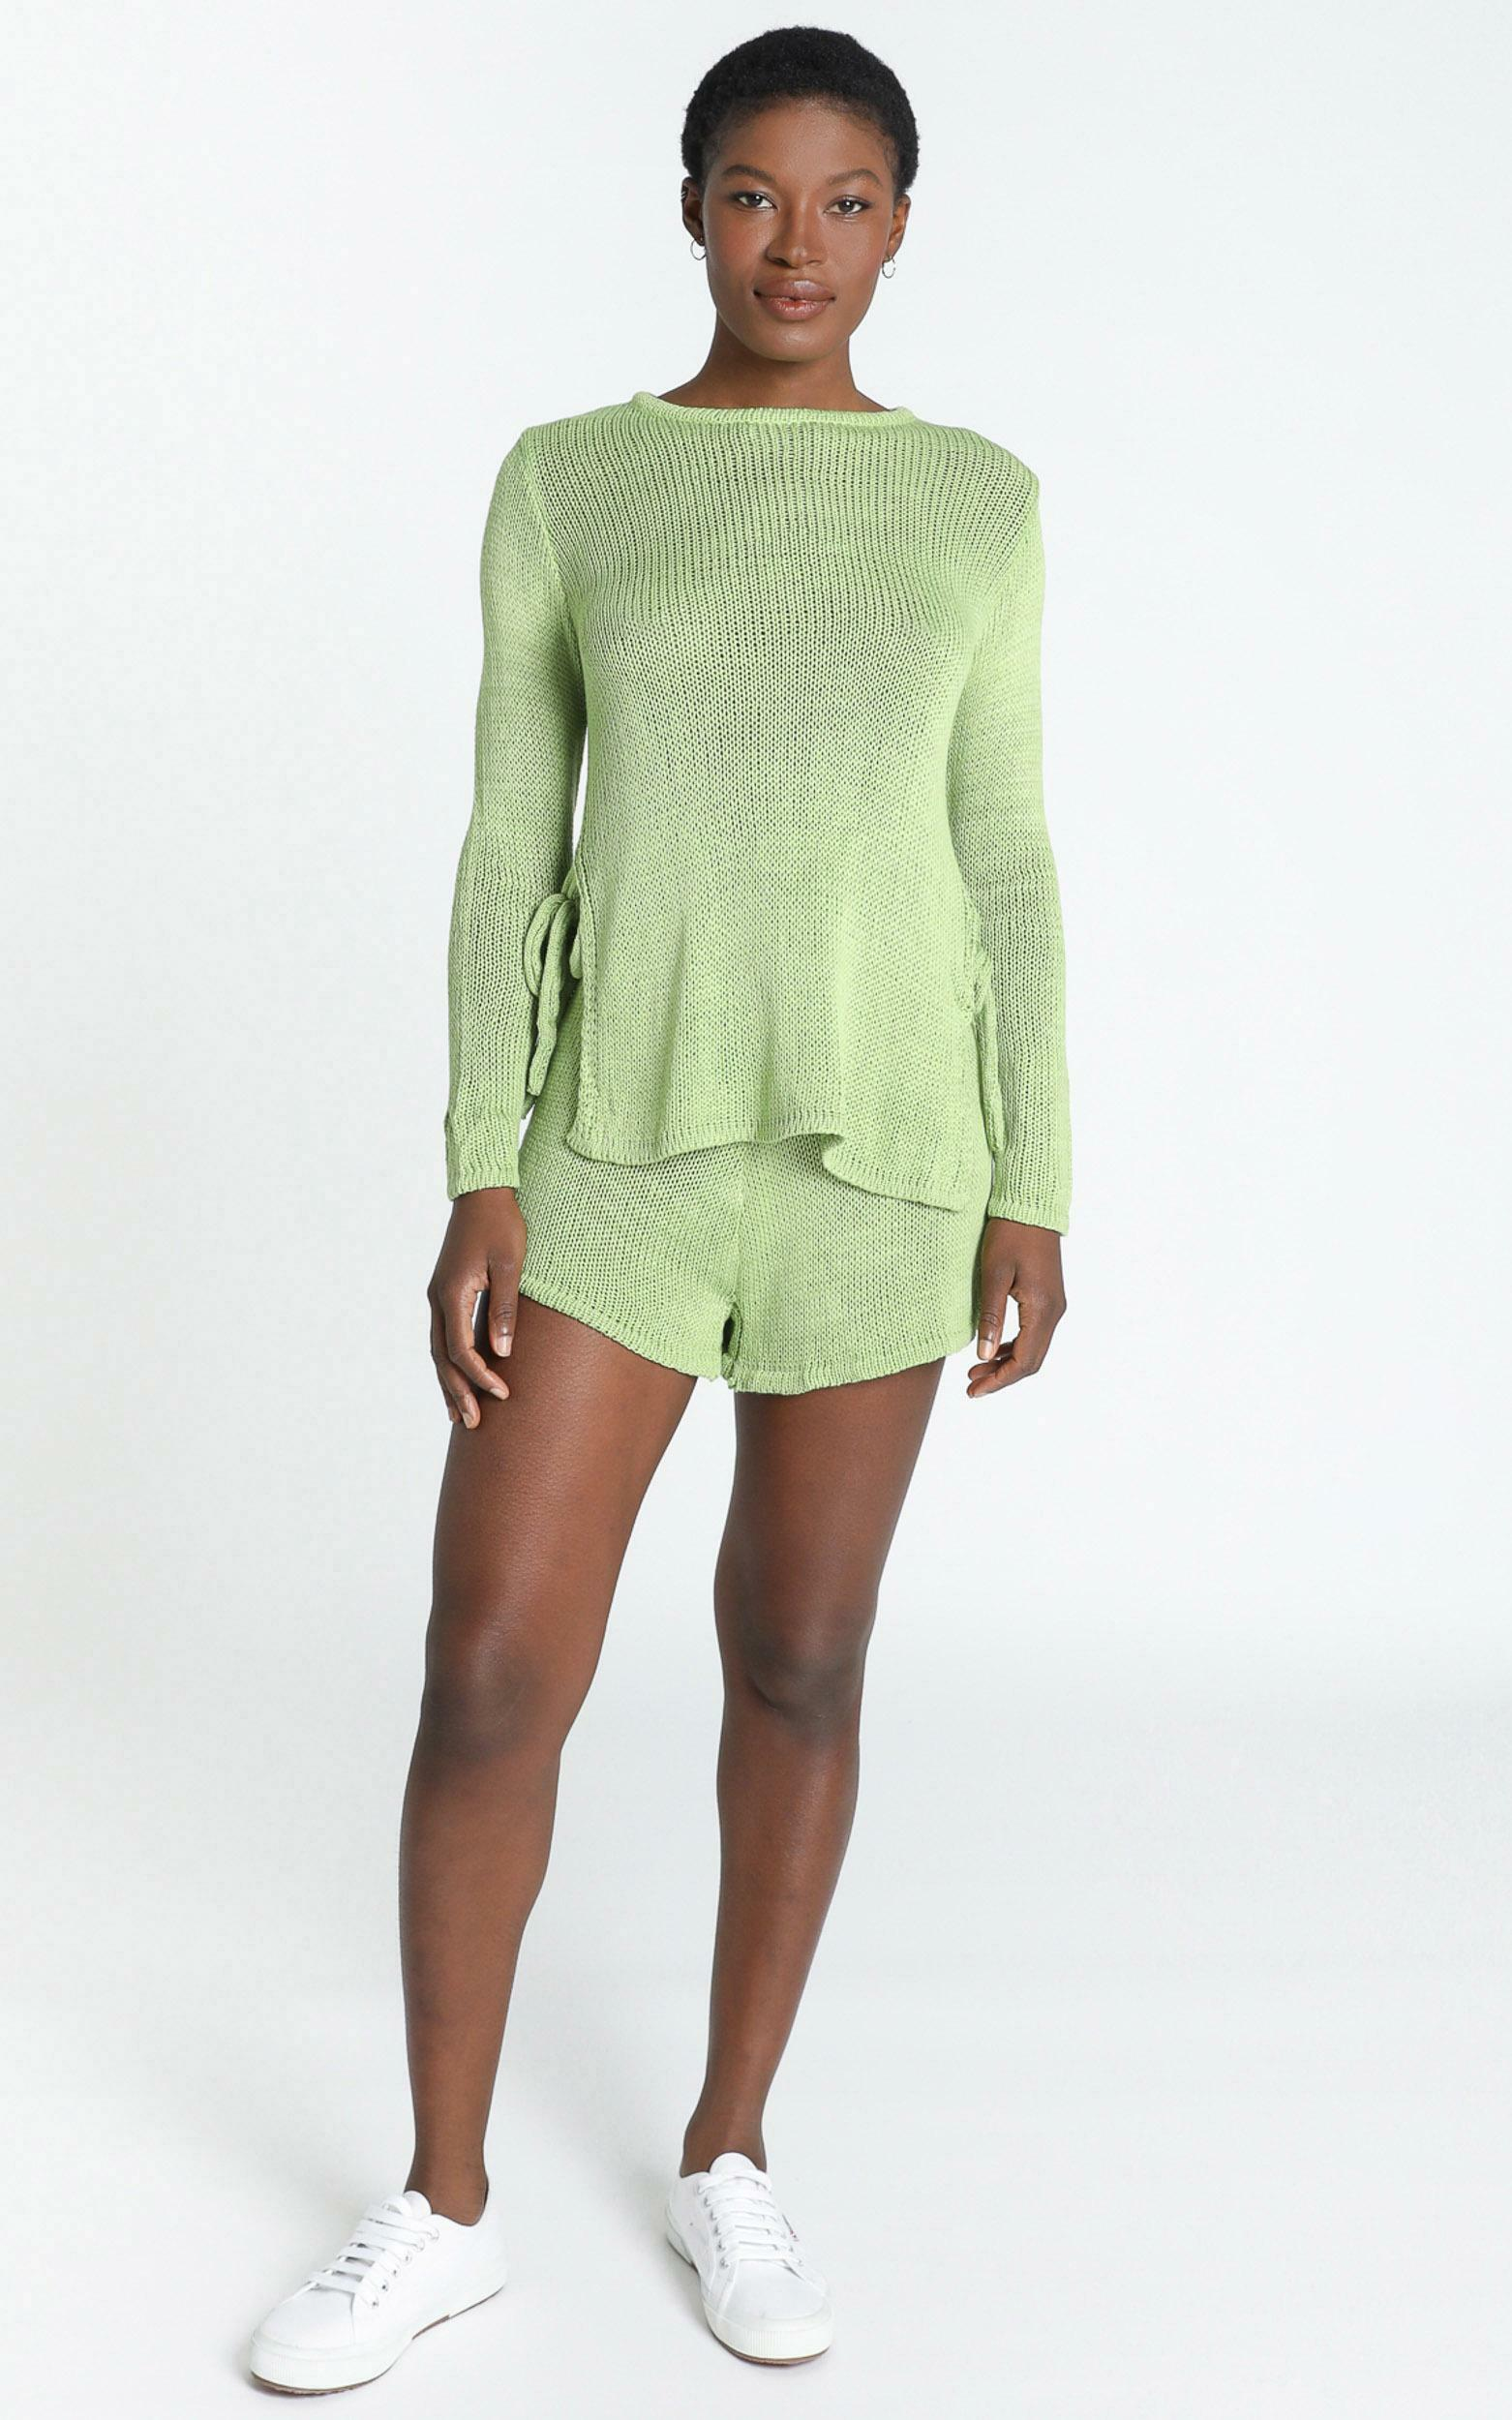 Finn Two Piece Set in Green - 8 (S), Green, hi-res image number null